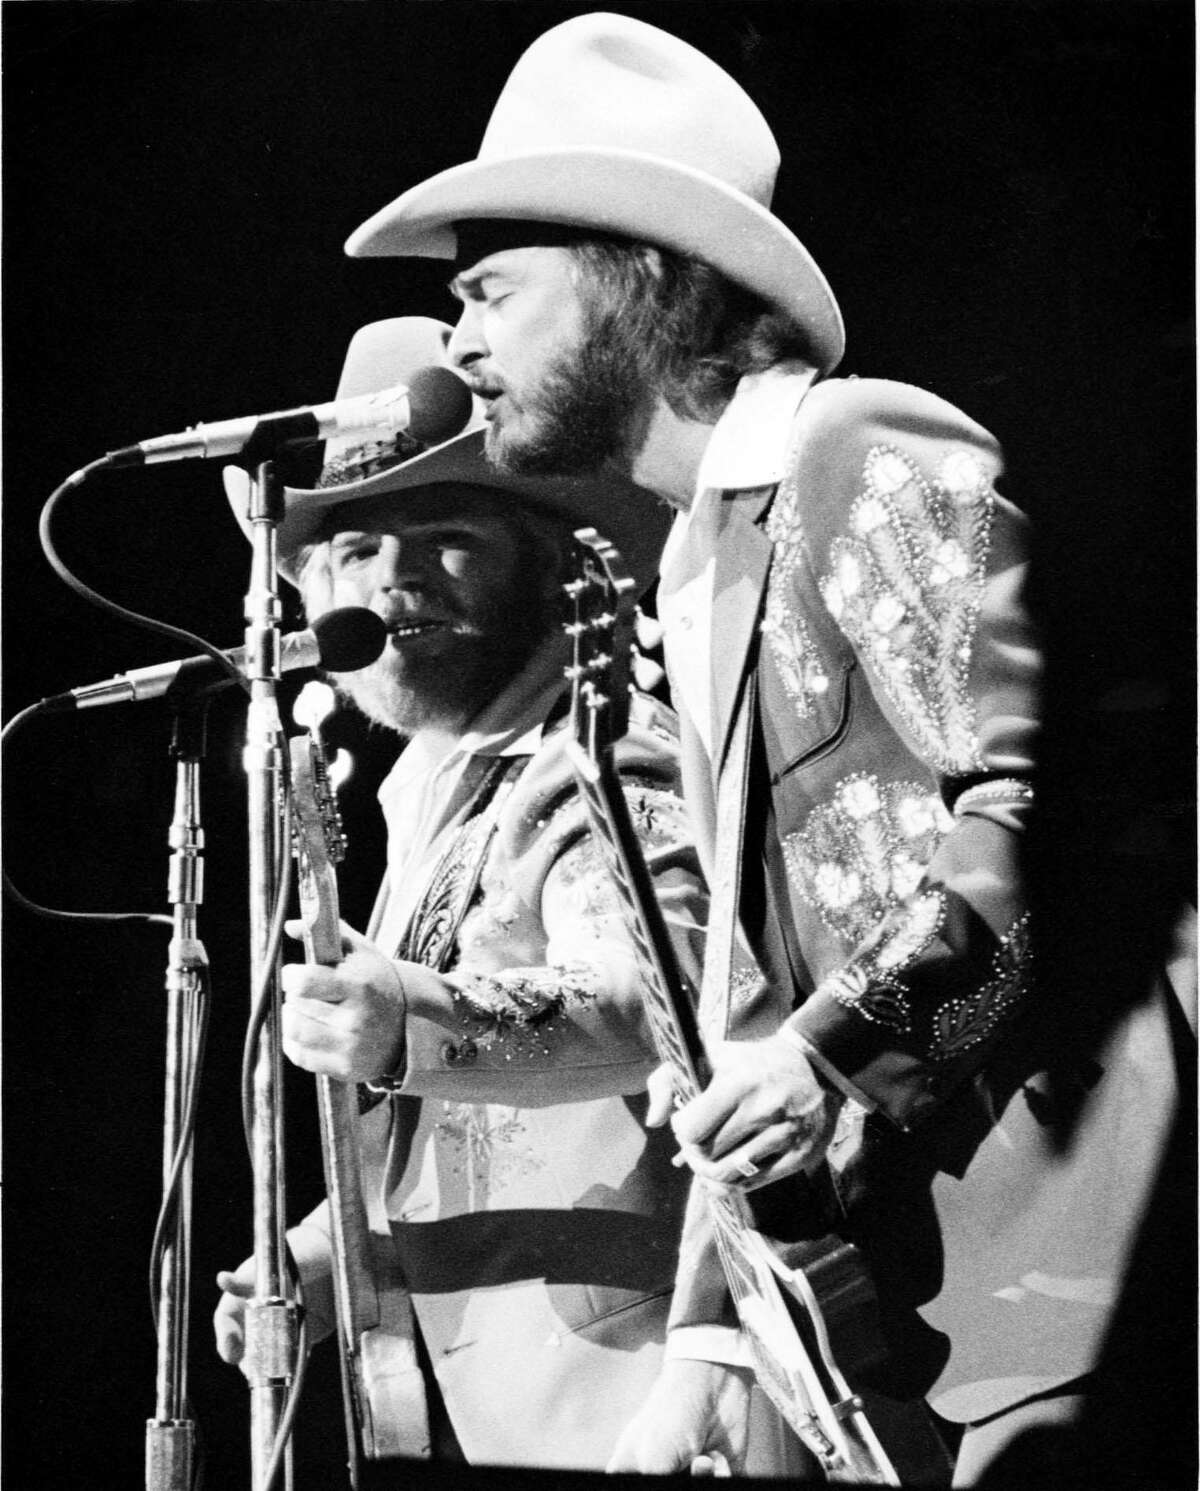 Dusty Hill, left, and Billy Gibbons of ZZ Top perform their first concert at the Summit in Houston in 1975.